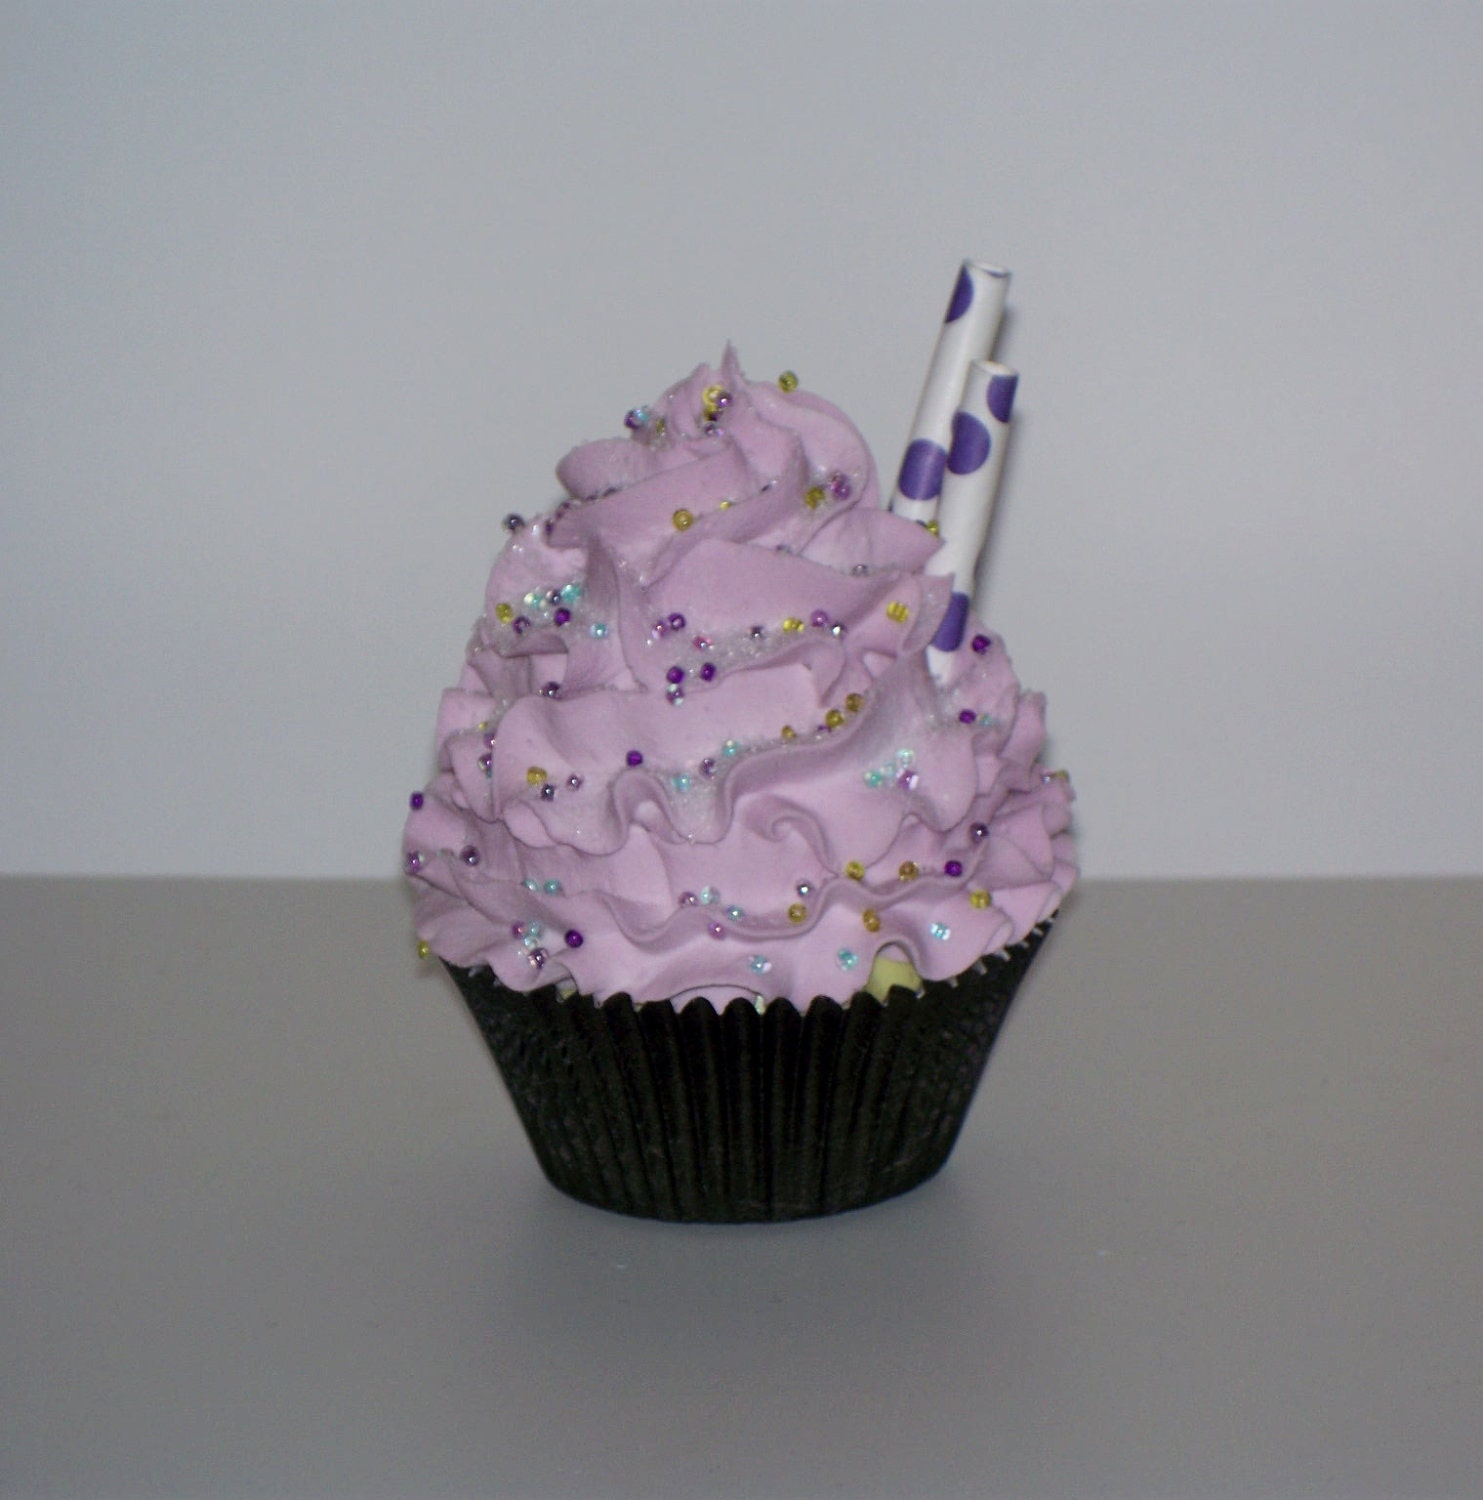 Http Www Etsy Com Listing 100792769 Lavender Fake Cupcake Kitchen Decor And